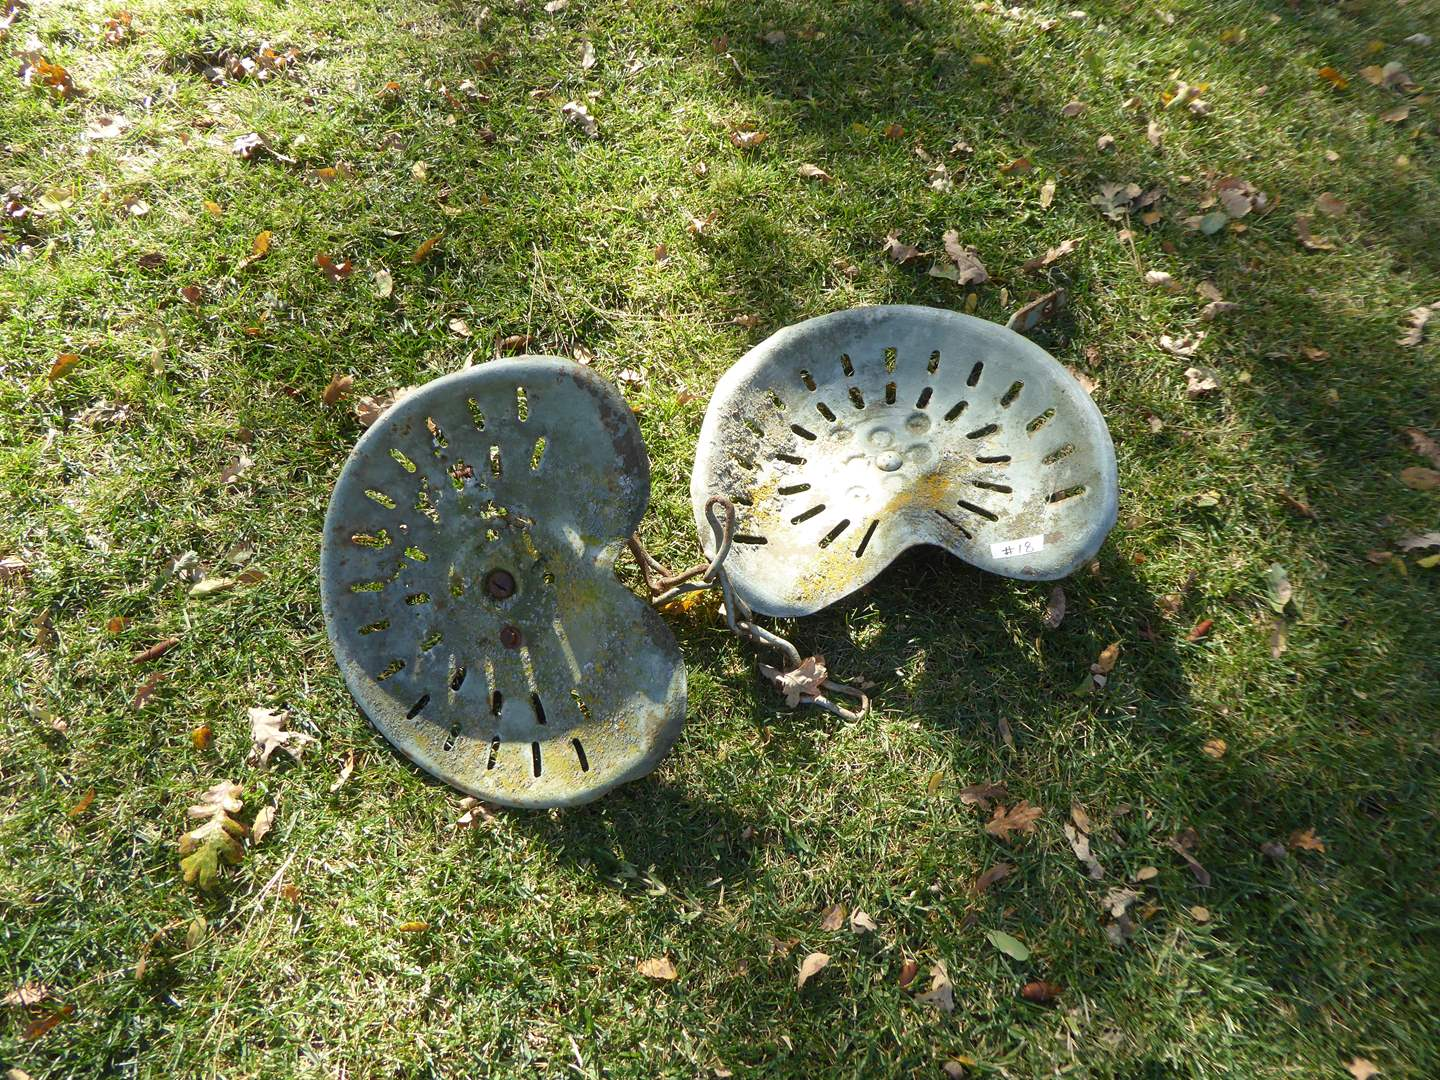 Lot # 18 - Two Vintage Tractor Seats  (main image)